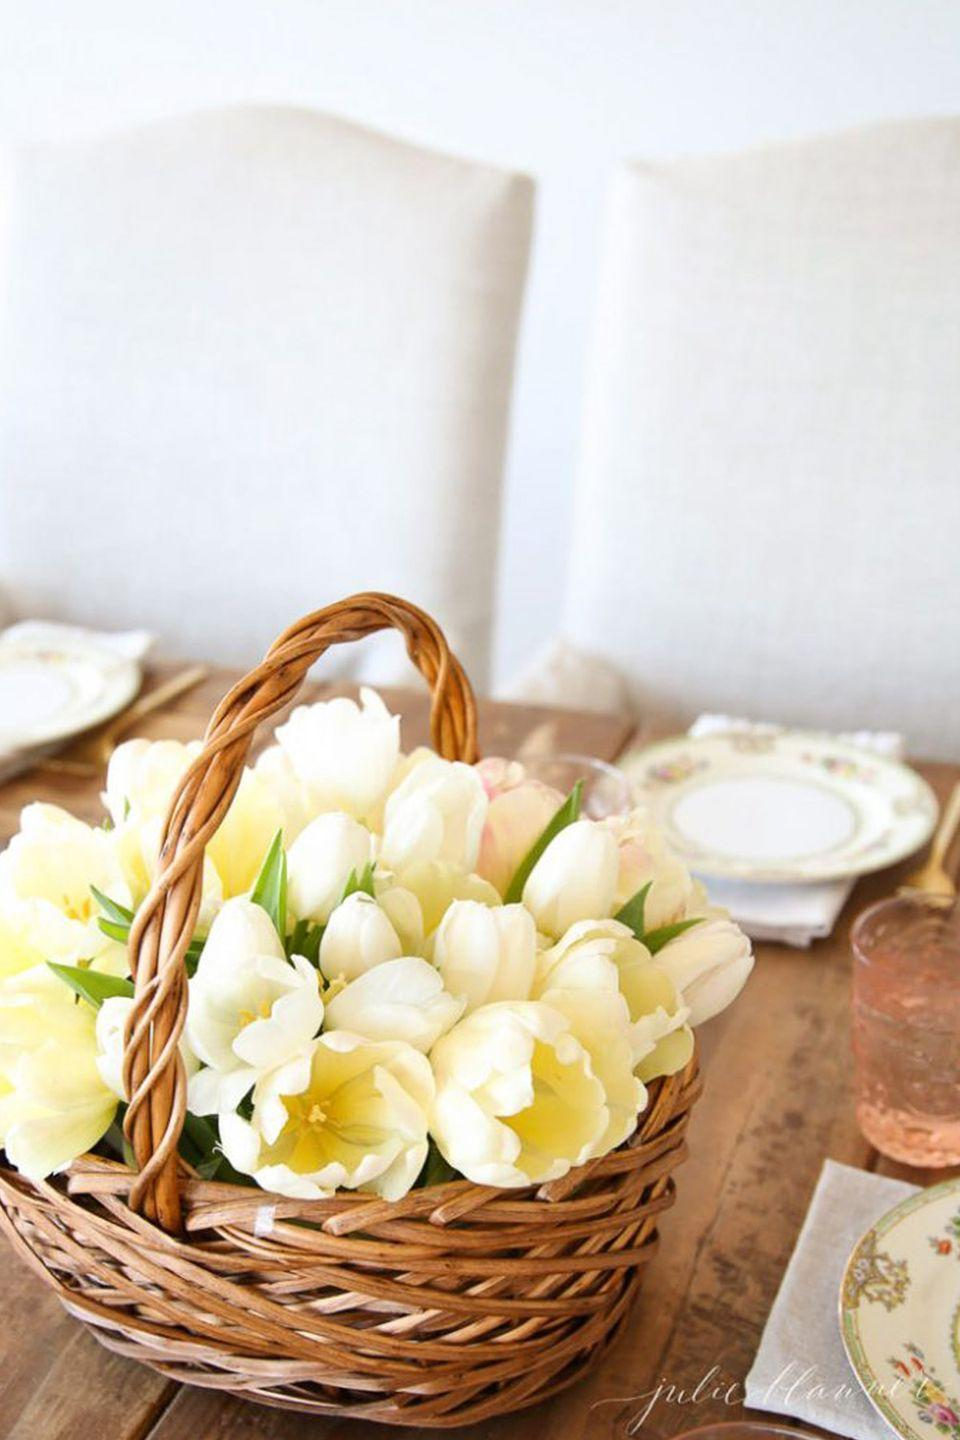 """<p>You can't go wrong with a white and cream bouquet of flowers, especially when they're nestled into a rustic, woven basket. </p><p><em><a href=""""https://julieblanner.com/basket-of-tulips-spring-centerpiece/"""" rel=""""nofollow noopener"""" target=""""_blank"""" data-ylk=""""slk:Get the tutorial at Julie Blanner »"""" class=""""link rapid-noclick-resp"""">Get the tutorial at Julie Blanner »</a></em></p><p><strong><em>Pottery Barn Artisan Vase, $79</em></strong> <a class=""""link rapid-noclick-resp"""" href=""""https://go.redirectingat.com?id=74968X1596630&url=https%3A%2F%2Fwww.potterybarn.com%2Fproducts%2Fartisan-ceramic-vase%2F&sref=https%3A%2F%2Fwww.housebeautiful.com%2Fentertaining%2Fflower-arrangements%2Fg19409803%2Feaster-flower-arrangements%2F"""" rel=""""nofollow noopener"""" target=""""_blank"""" data-ylk=""""slk:BUY NOW"""">BUY NOW</a></p>"""